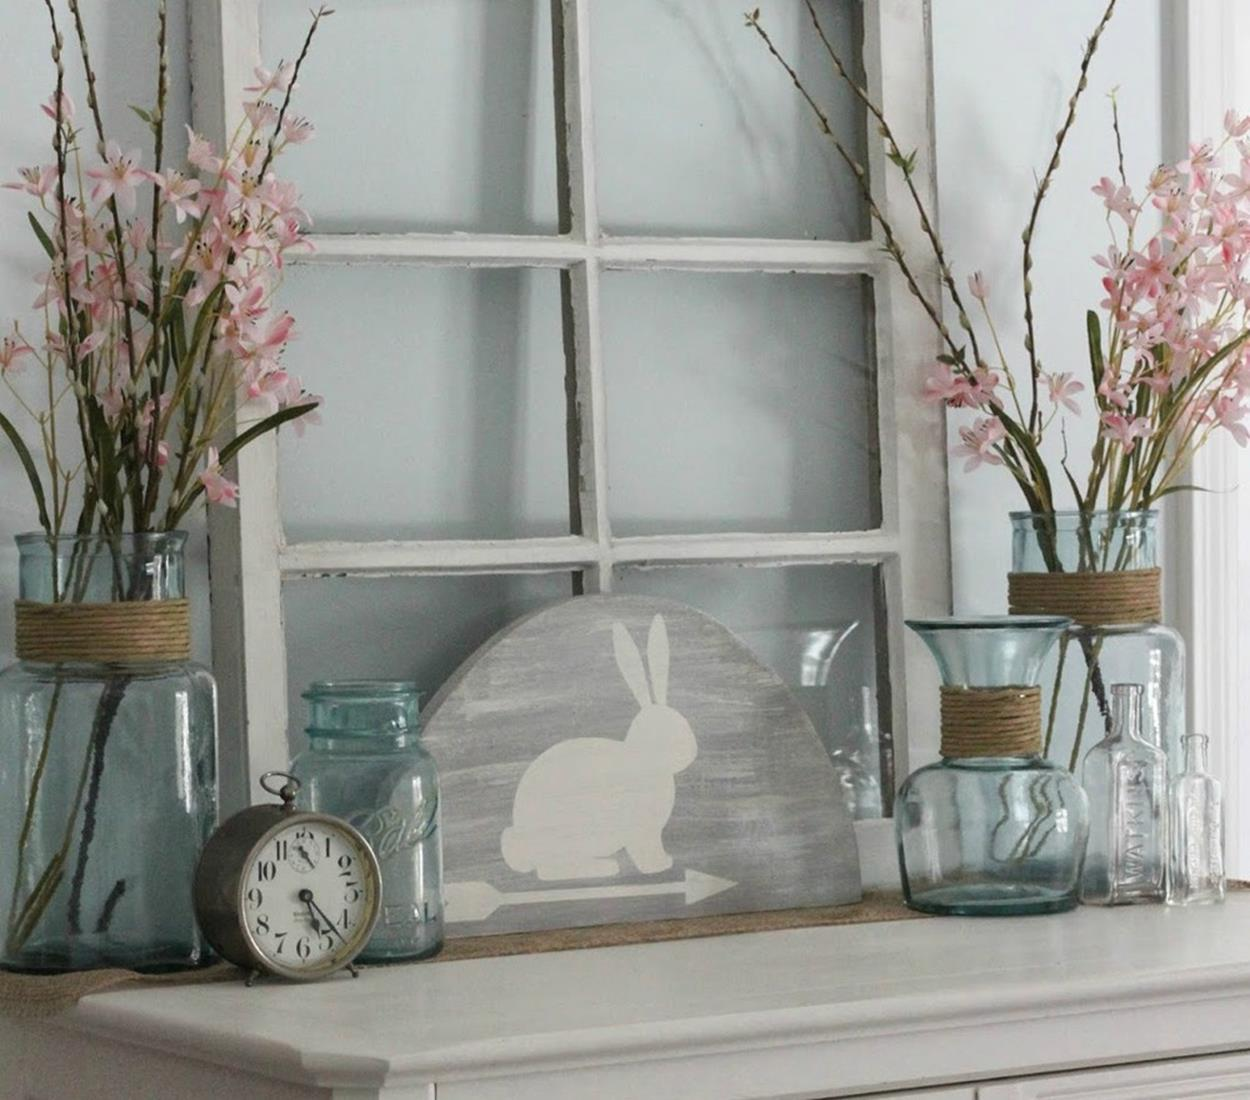 Cute Wooden Easter Decorations for the Outside 1